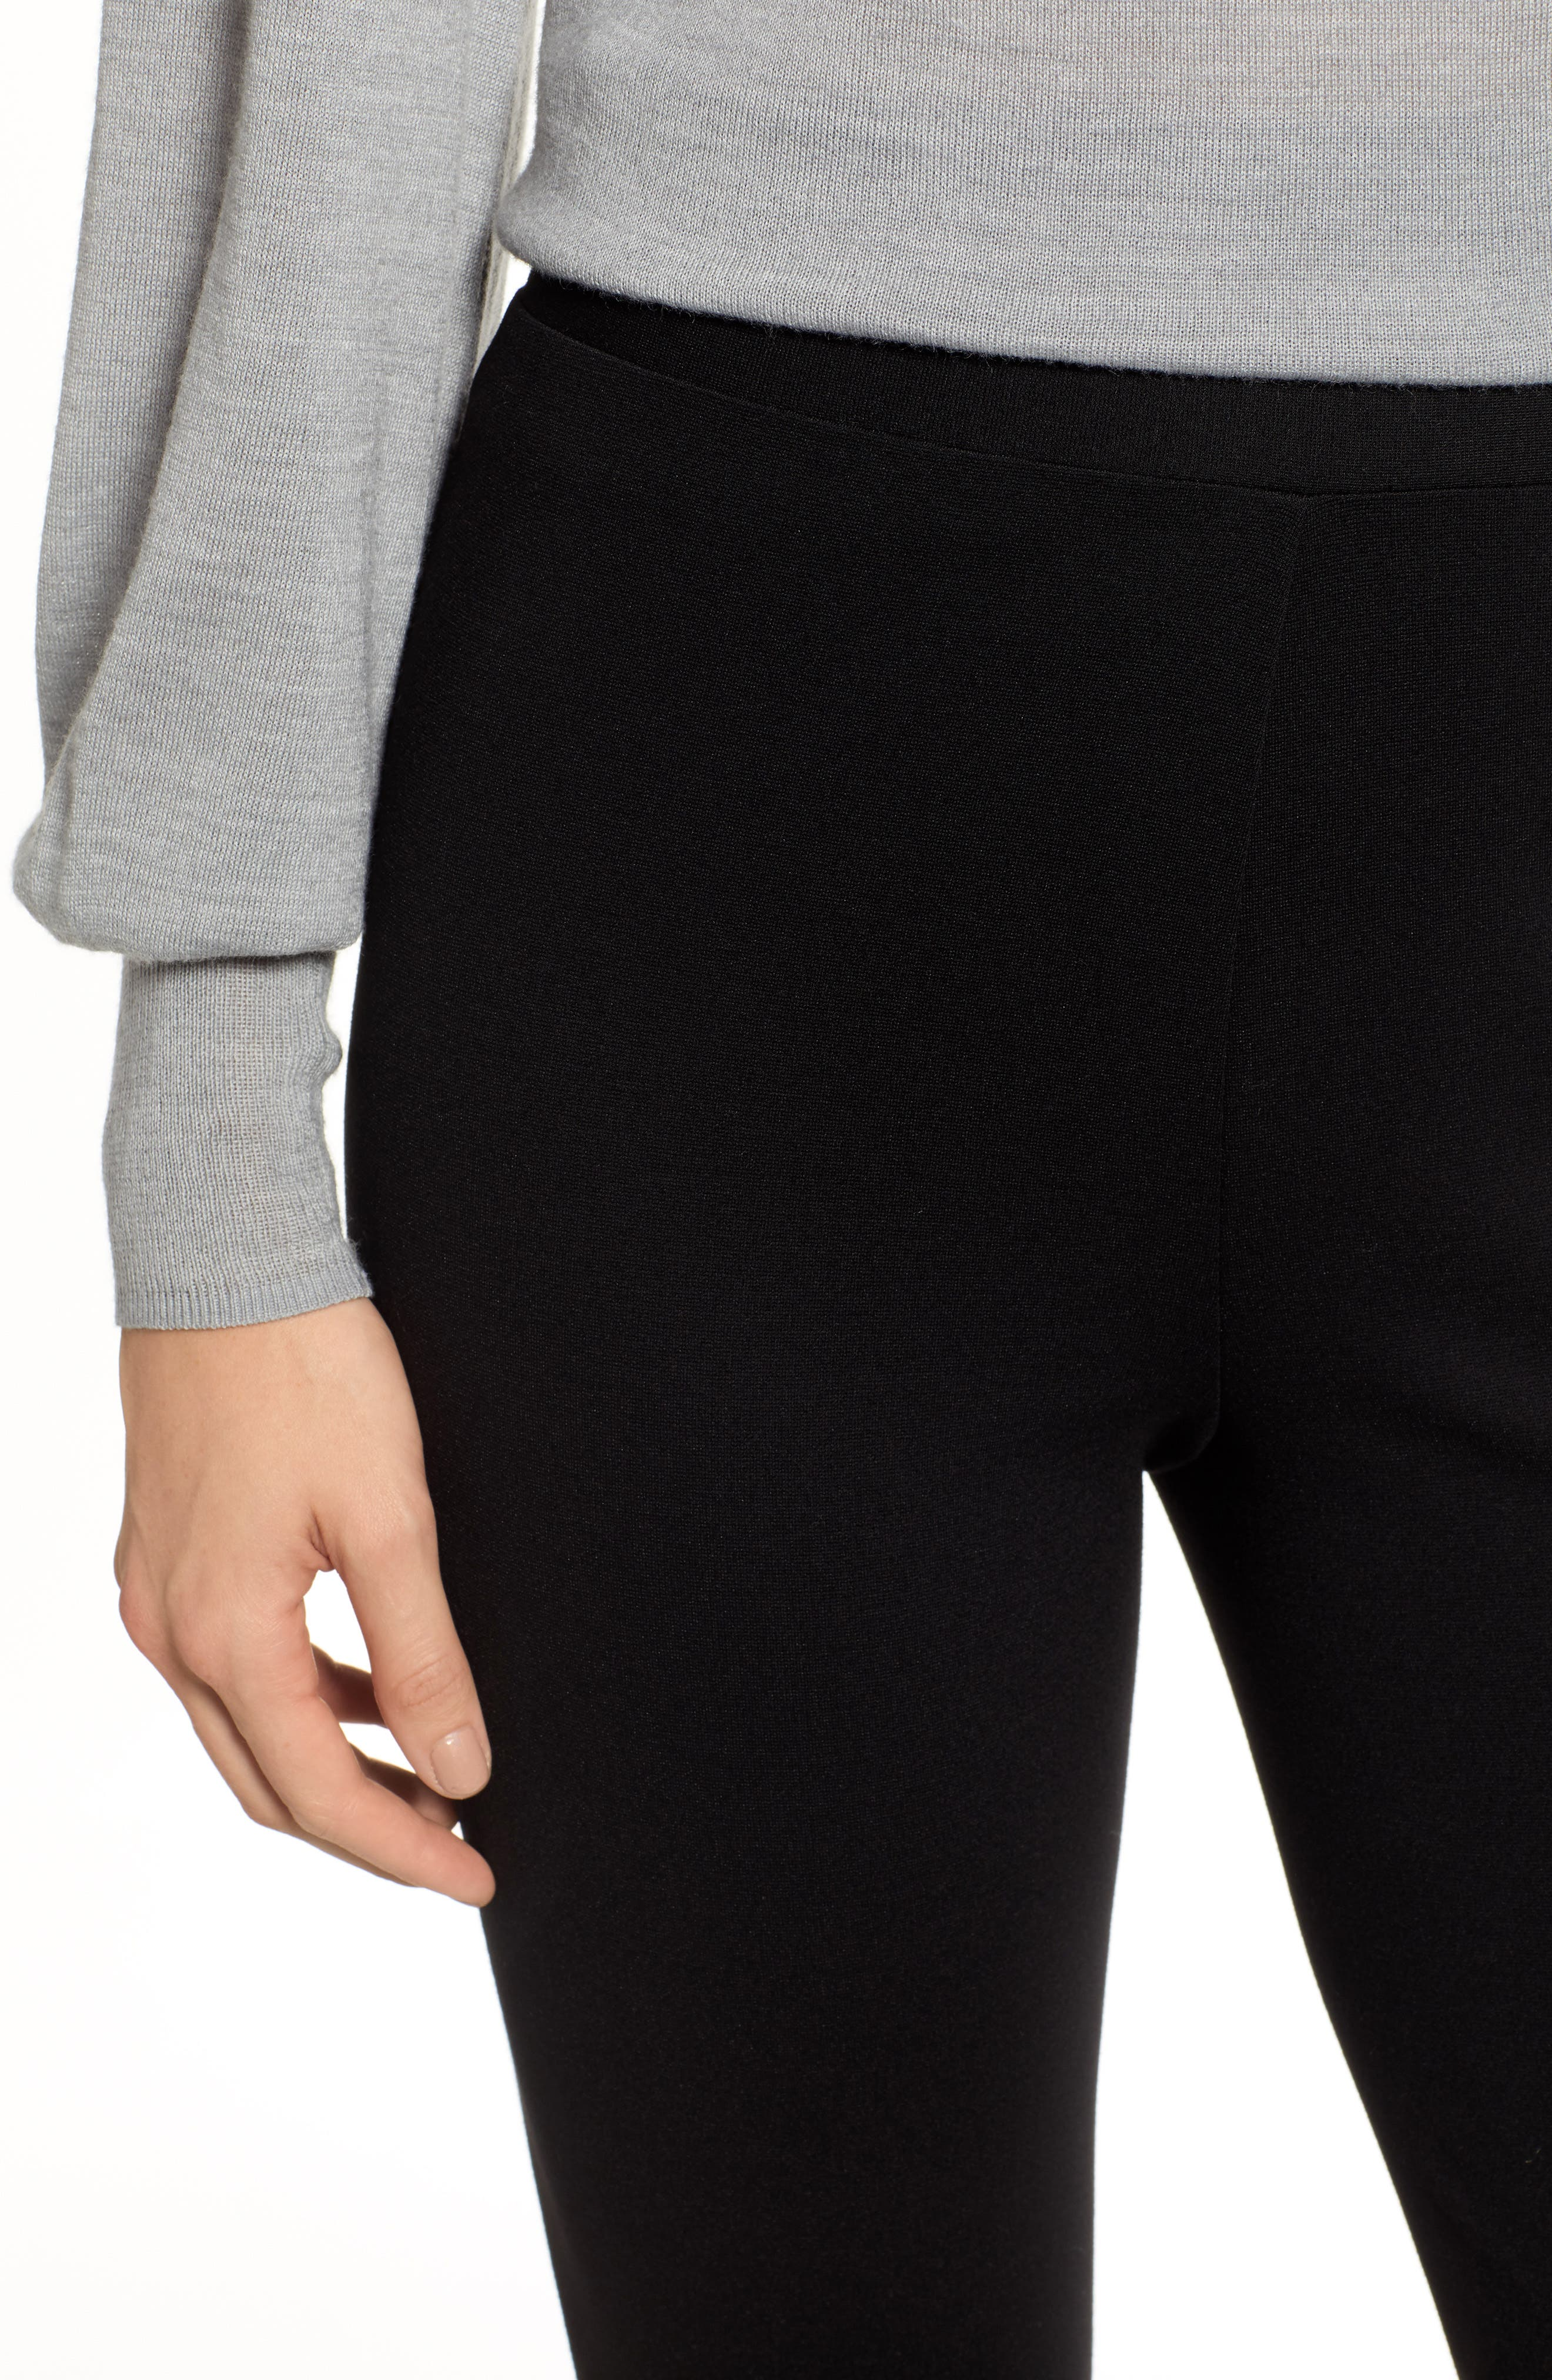 VINCE CAMUTO,                             Two by Vince Camuto Seamed Back Leggings,                             Alternate thumbnail 4, color,                             RICH BLACK